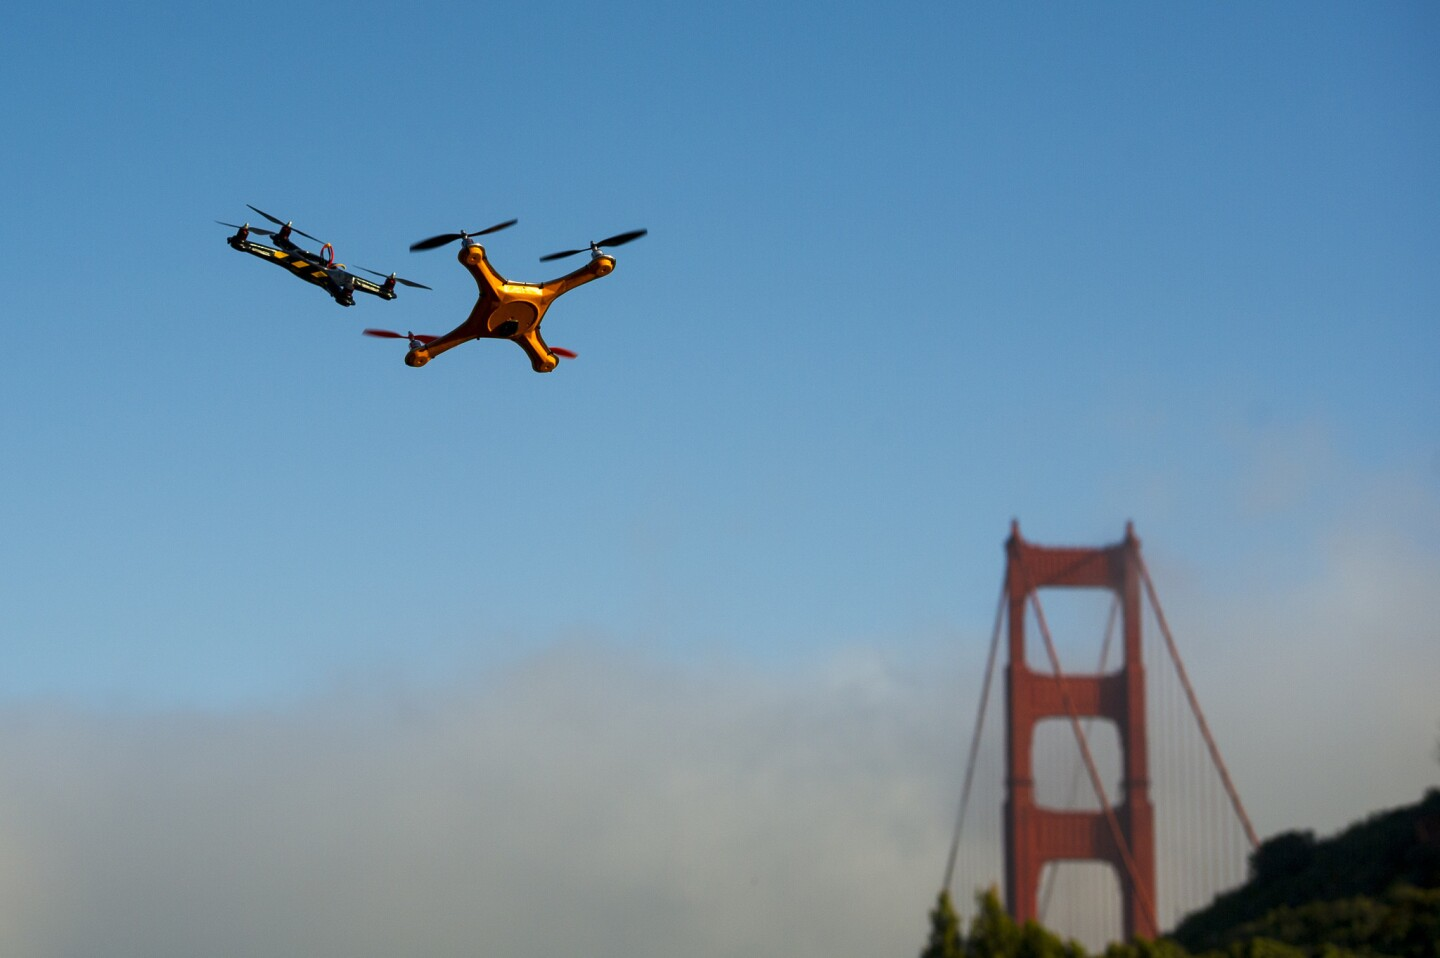 Drones fly during a battle demonstration at the Bloomberg Next Big Thing Summit in Sausalito on June 9.